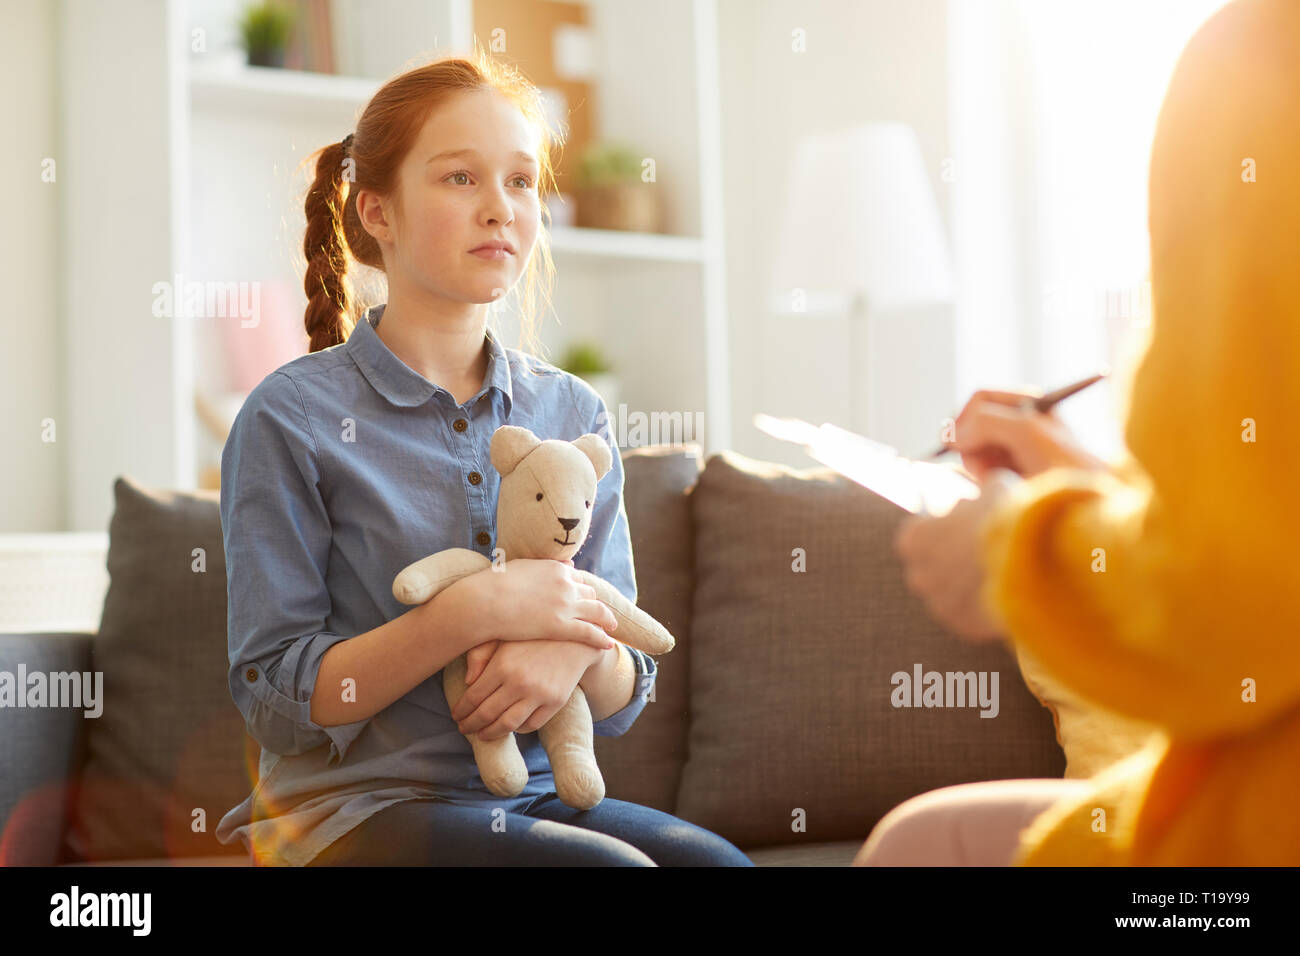 Teenager in Therapy Session - Stock Image